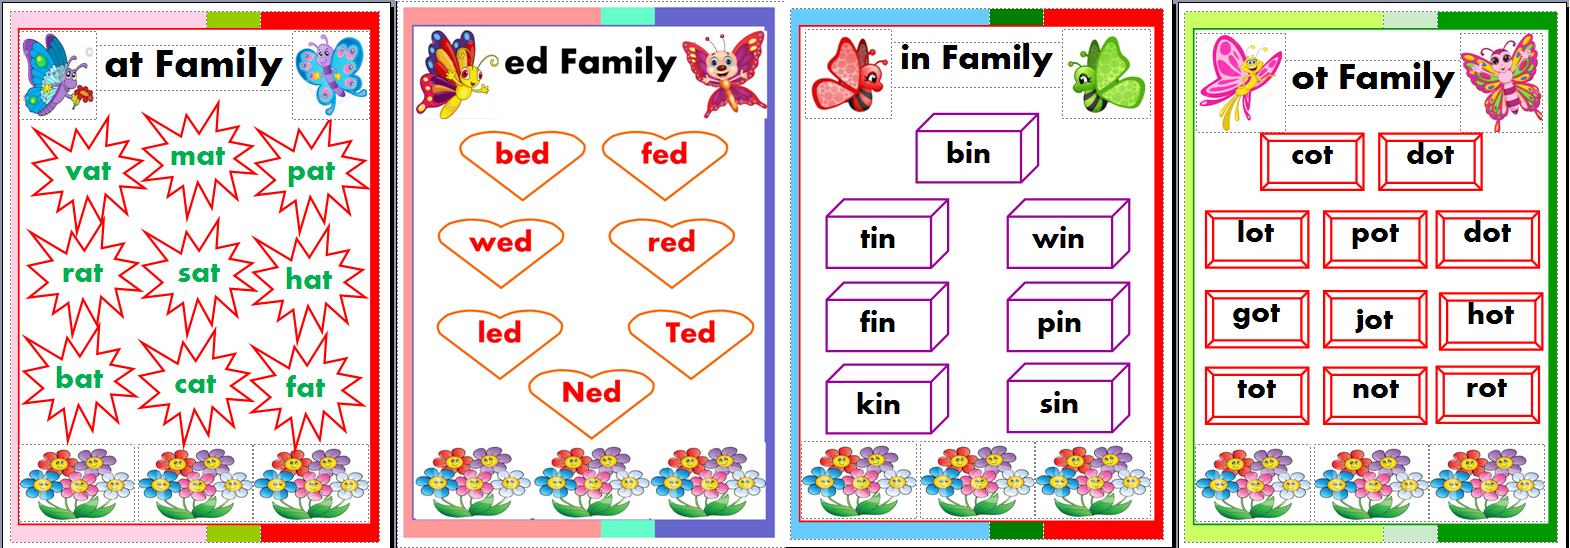 CVC WORD CHARTS IN PRINTABLE PUB FORMAT - DepEd LP's